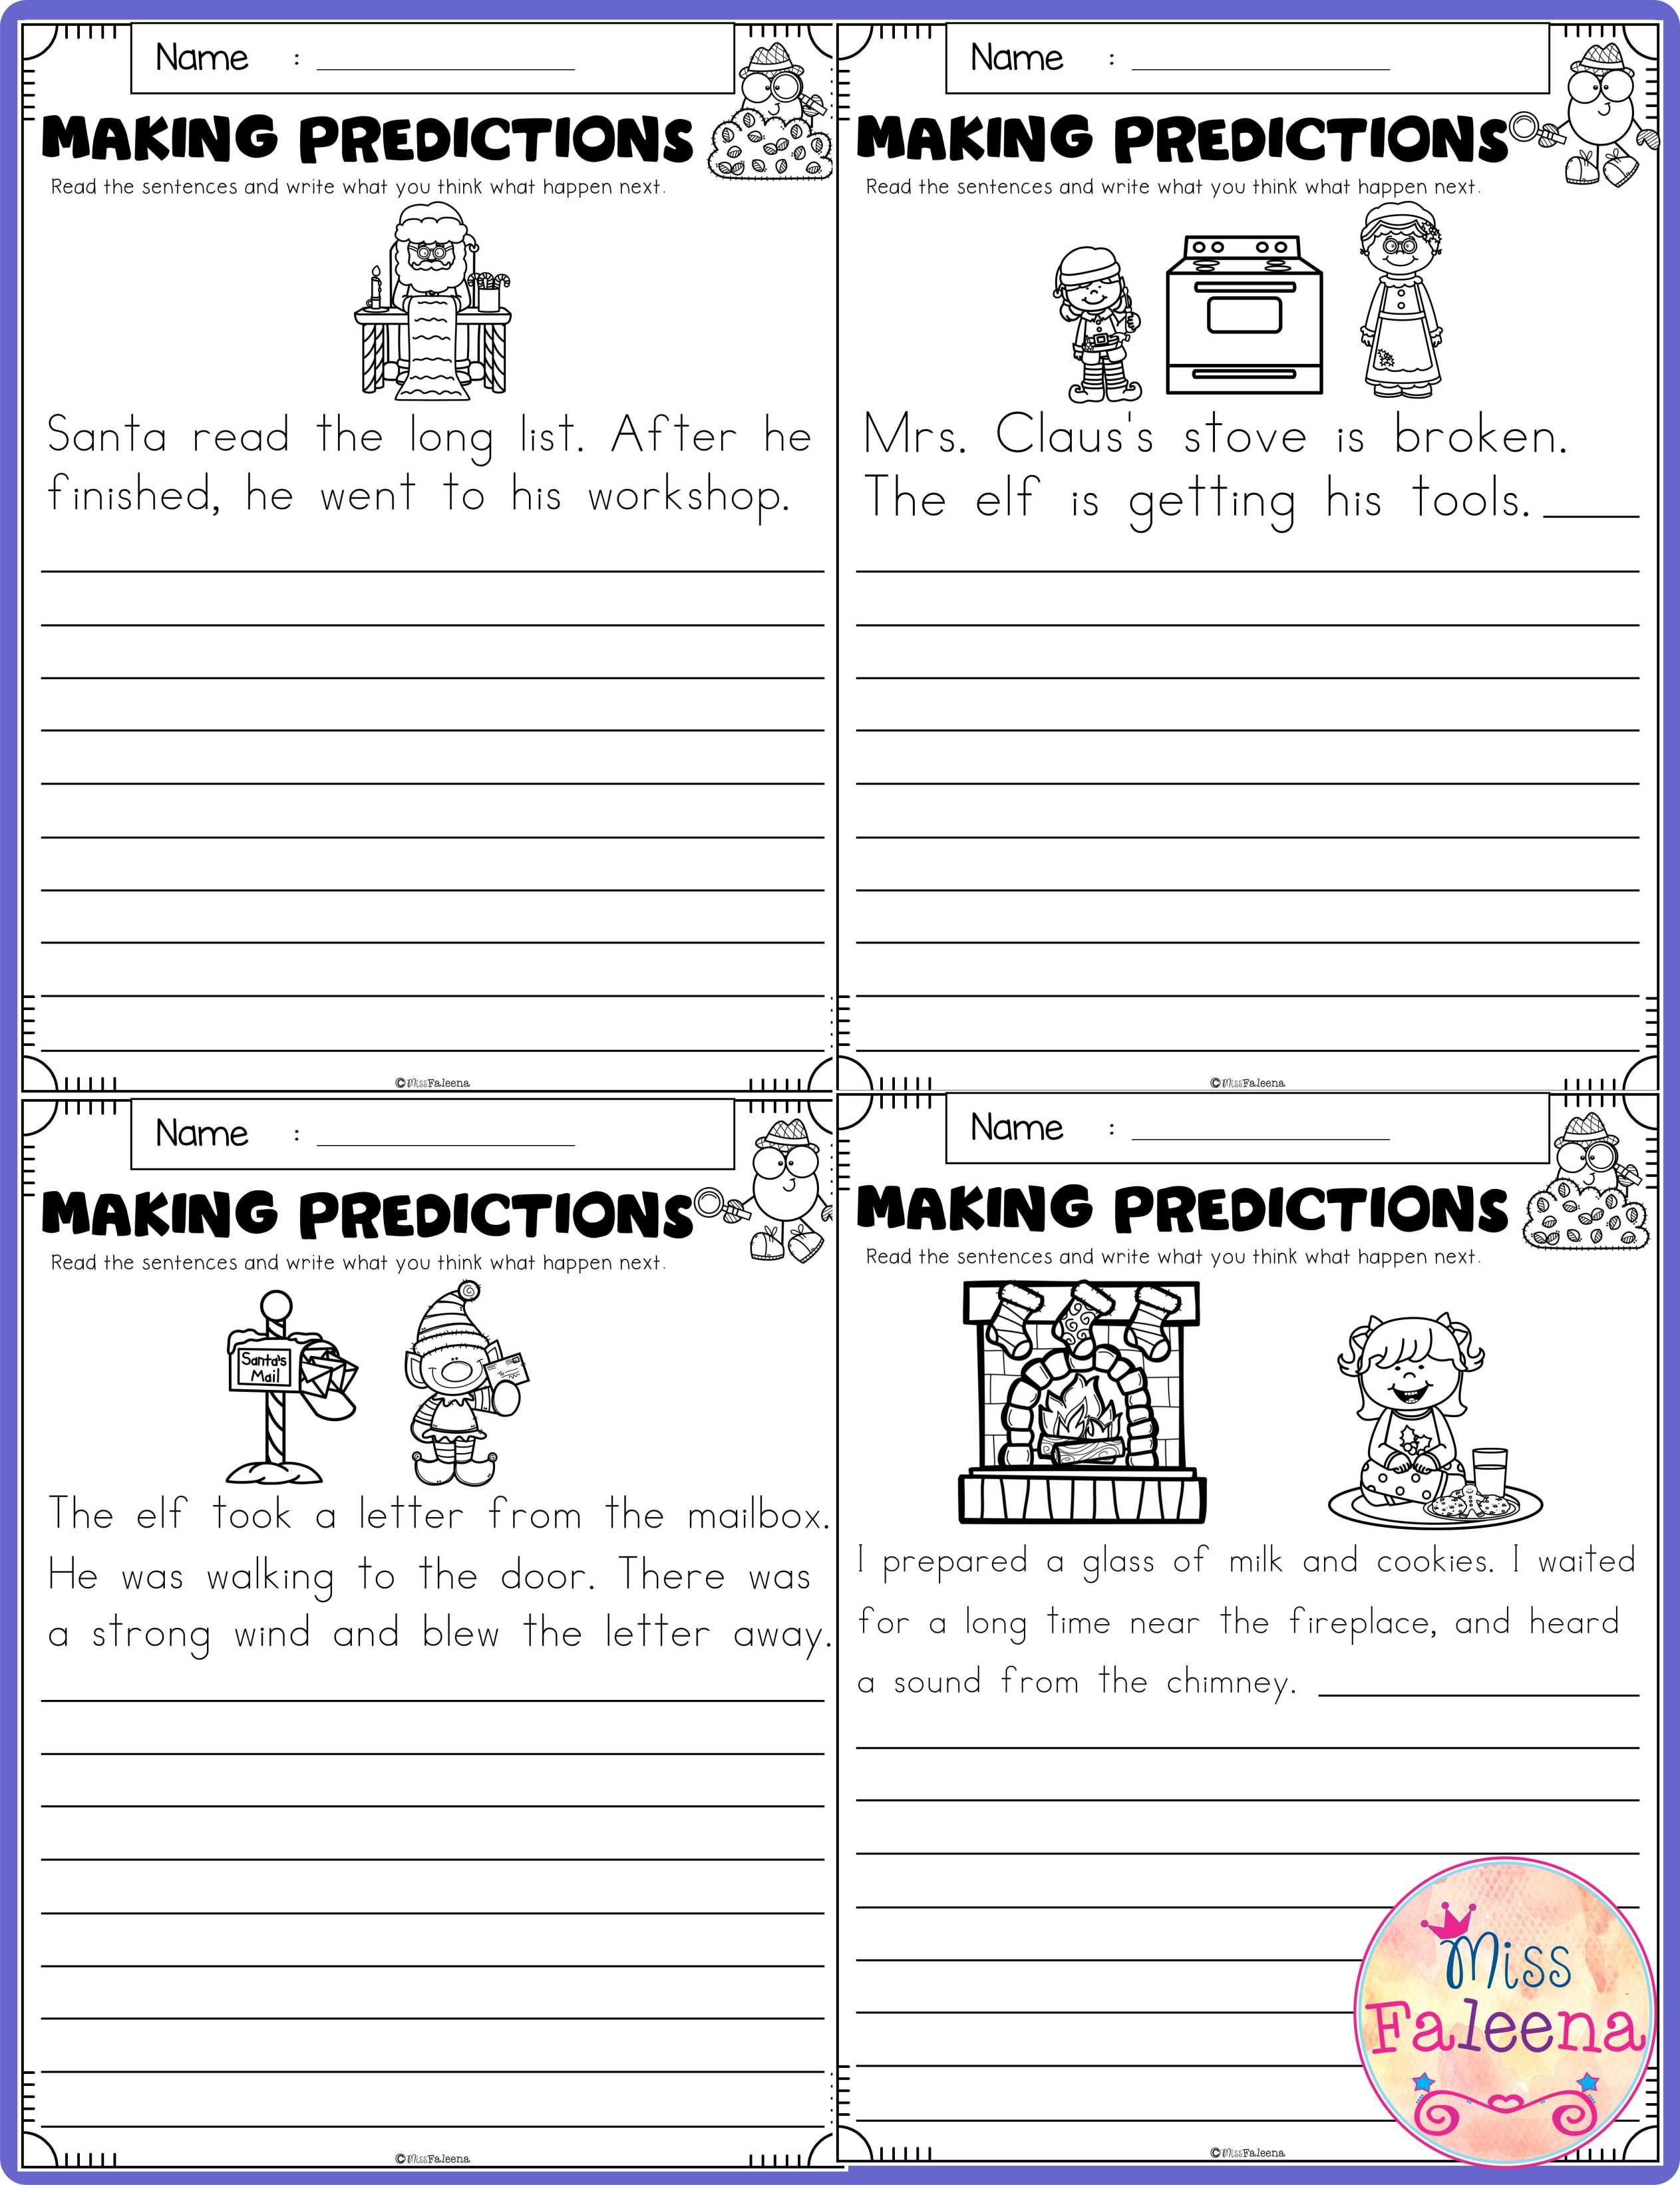 December Making Predictions Contains With Total Of 30 Pages Of Making Prediction Worksheets This Product Is Suitable For First Through Third Grade Students Th